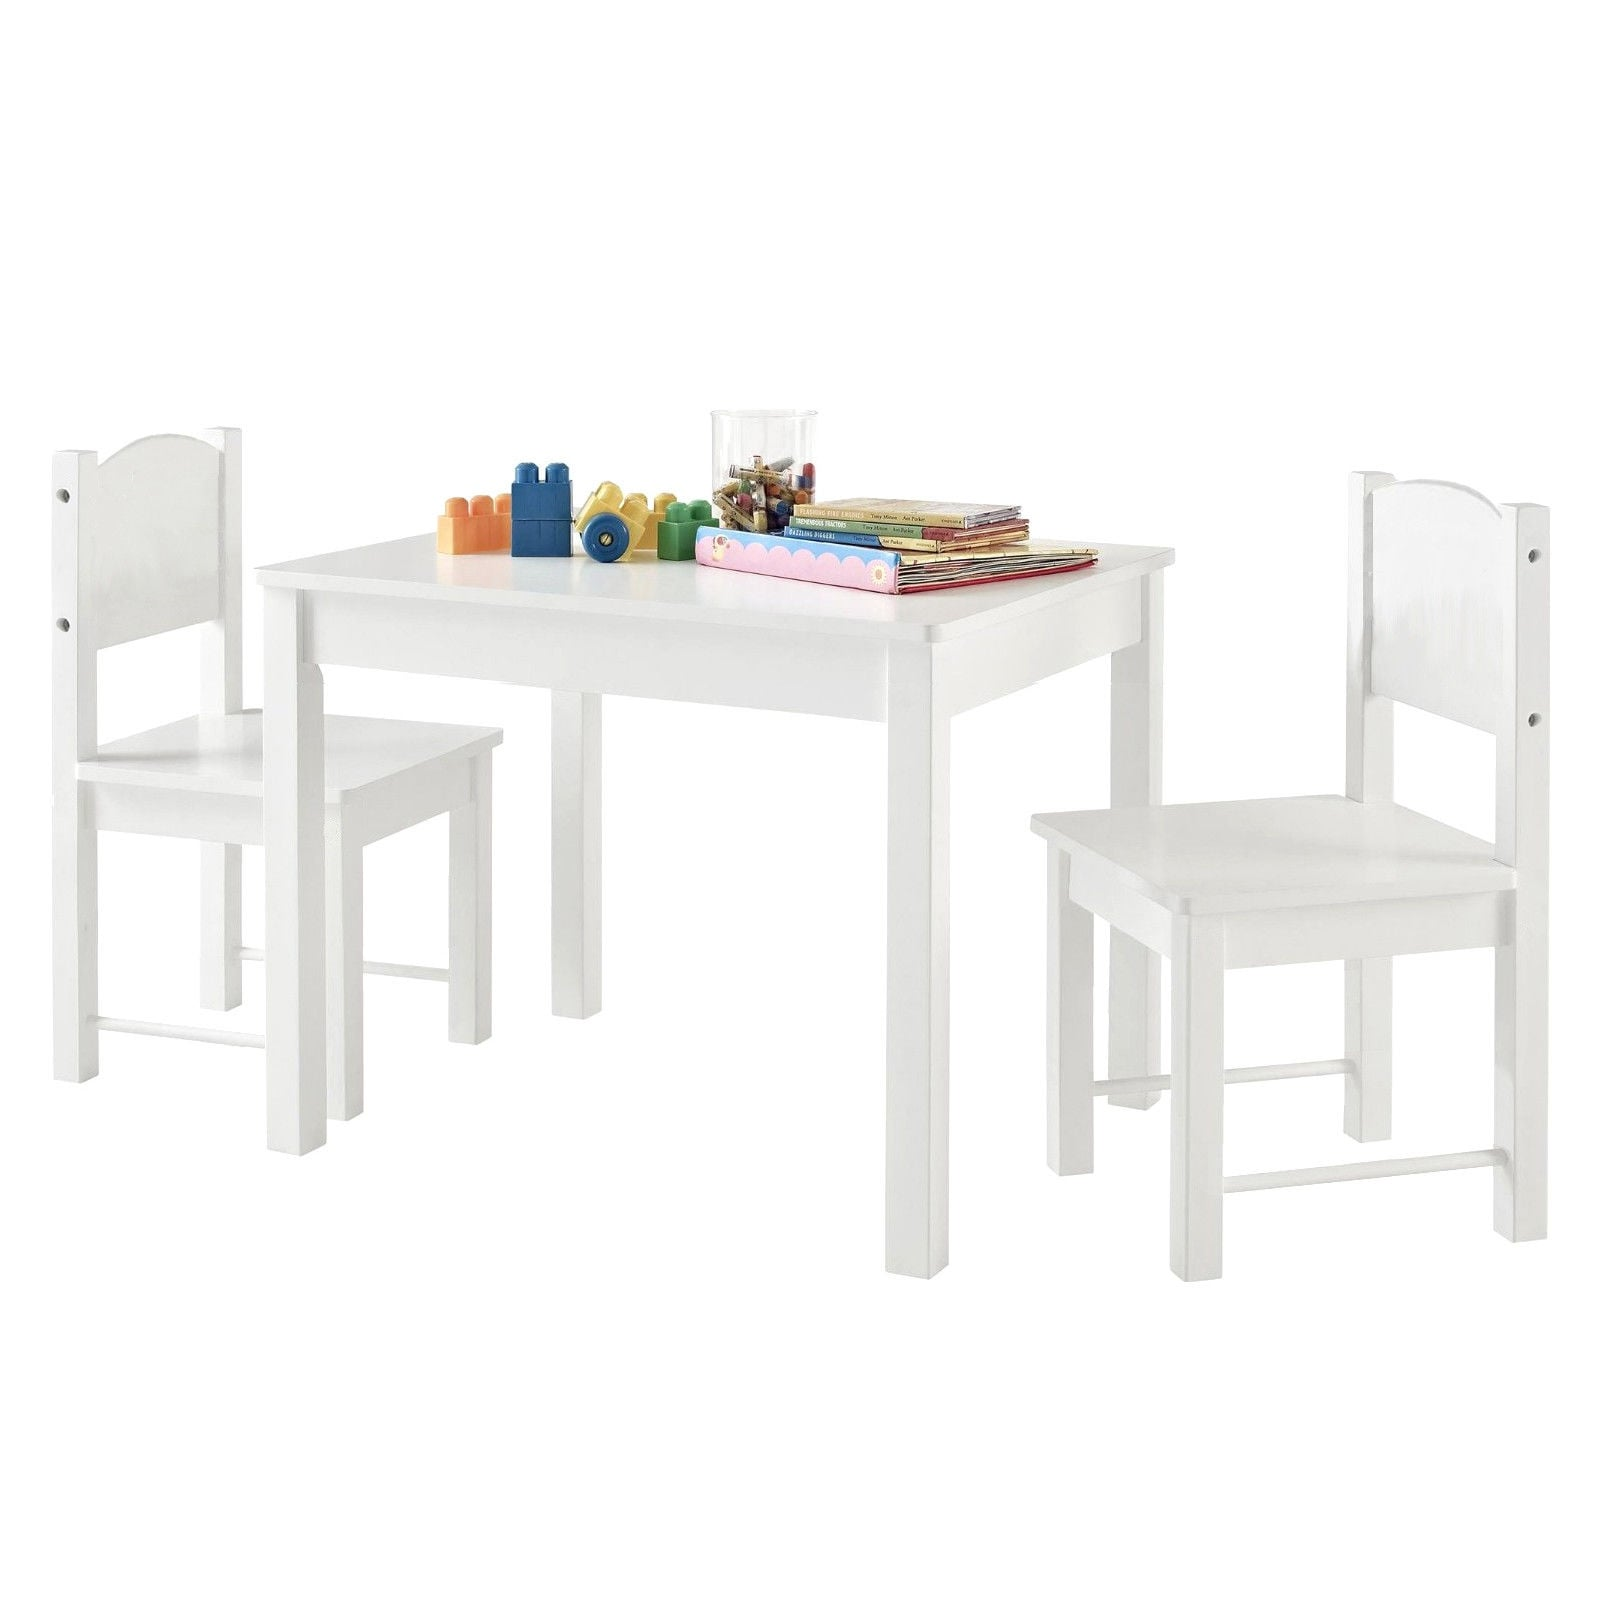 Infant Table And Chairs Wooden Kids Table Sturdy And Entertainment Table Set With 2 Chairs White